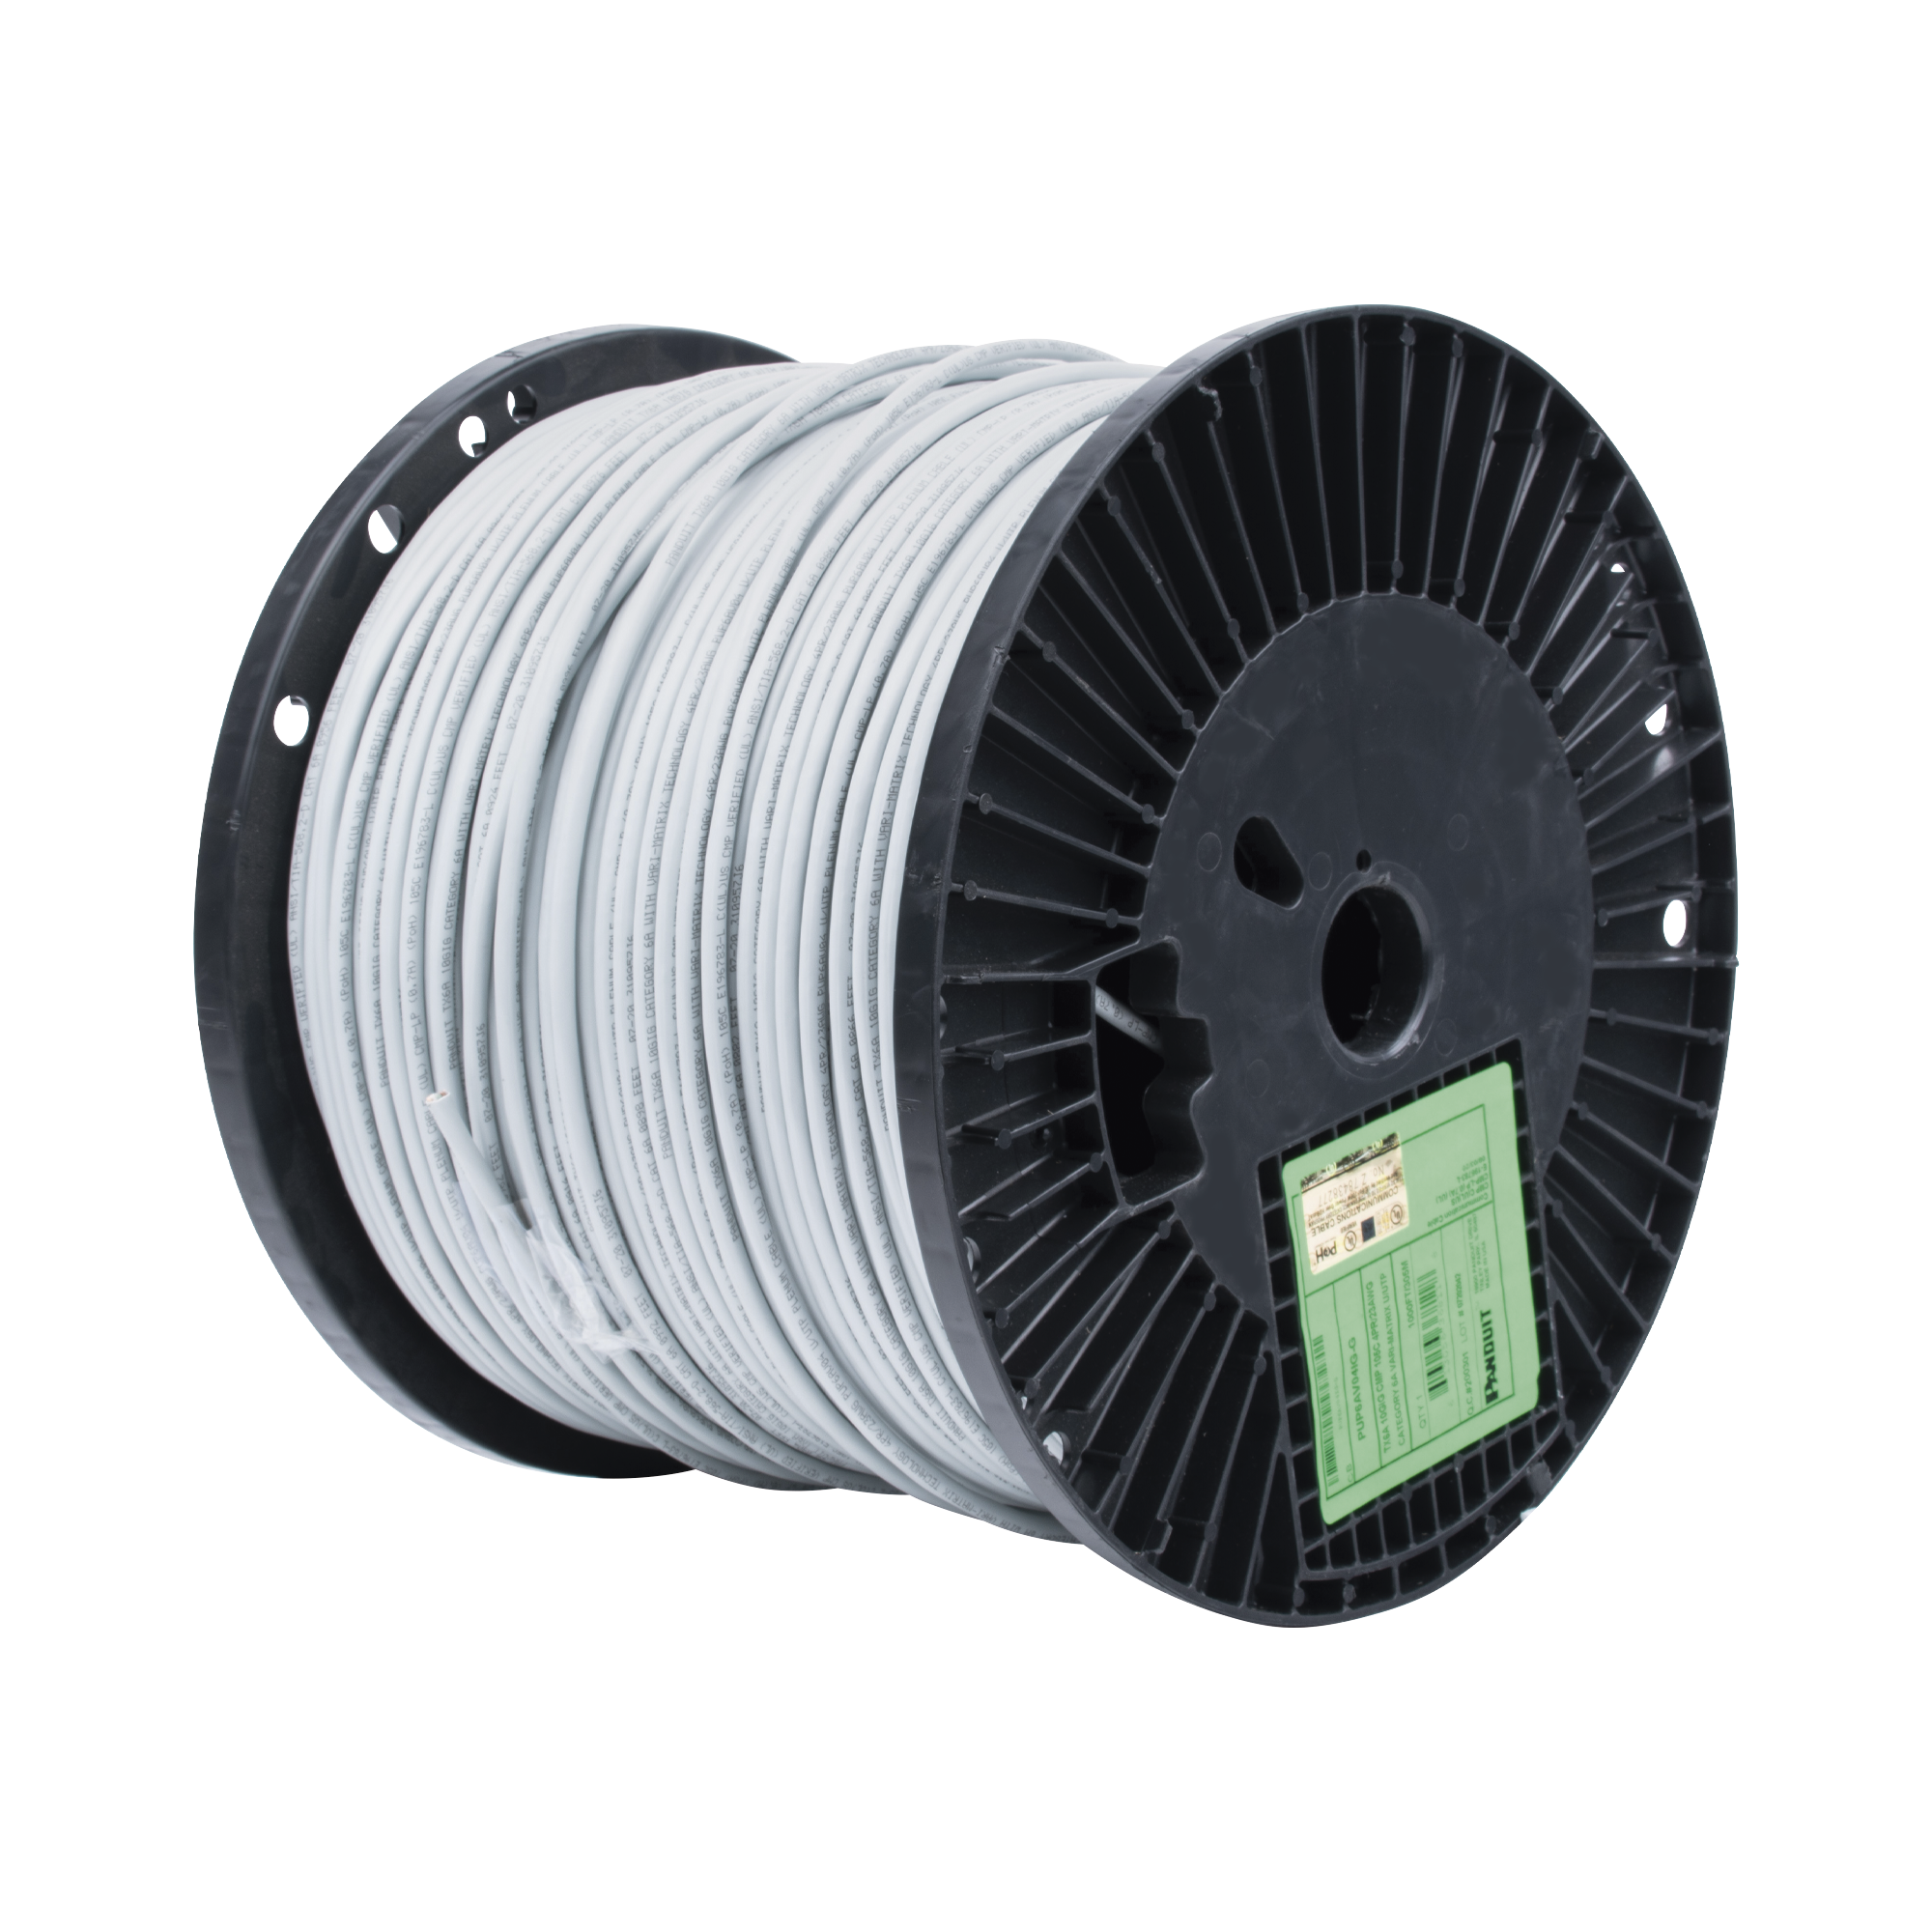 Bobina de Cable UTP de 4 Pares, Vari-MaTriX, Cat6A, 23 AWG, CMP (Plenum), Color Gris, 305m